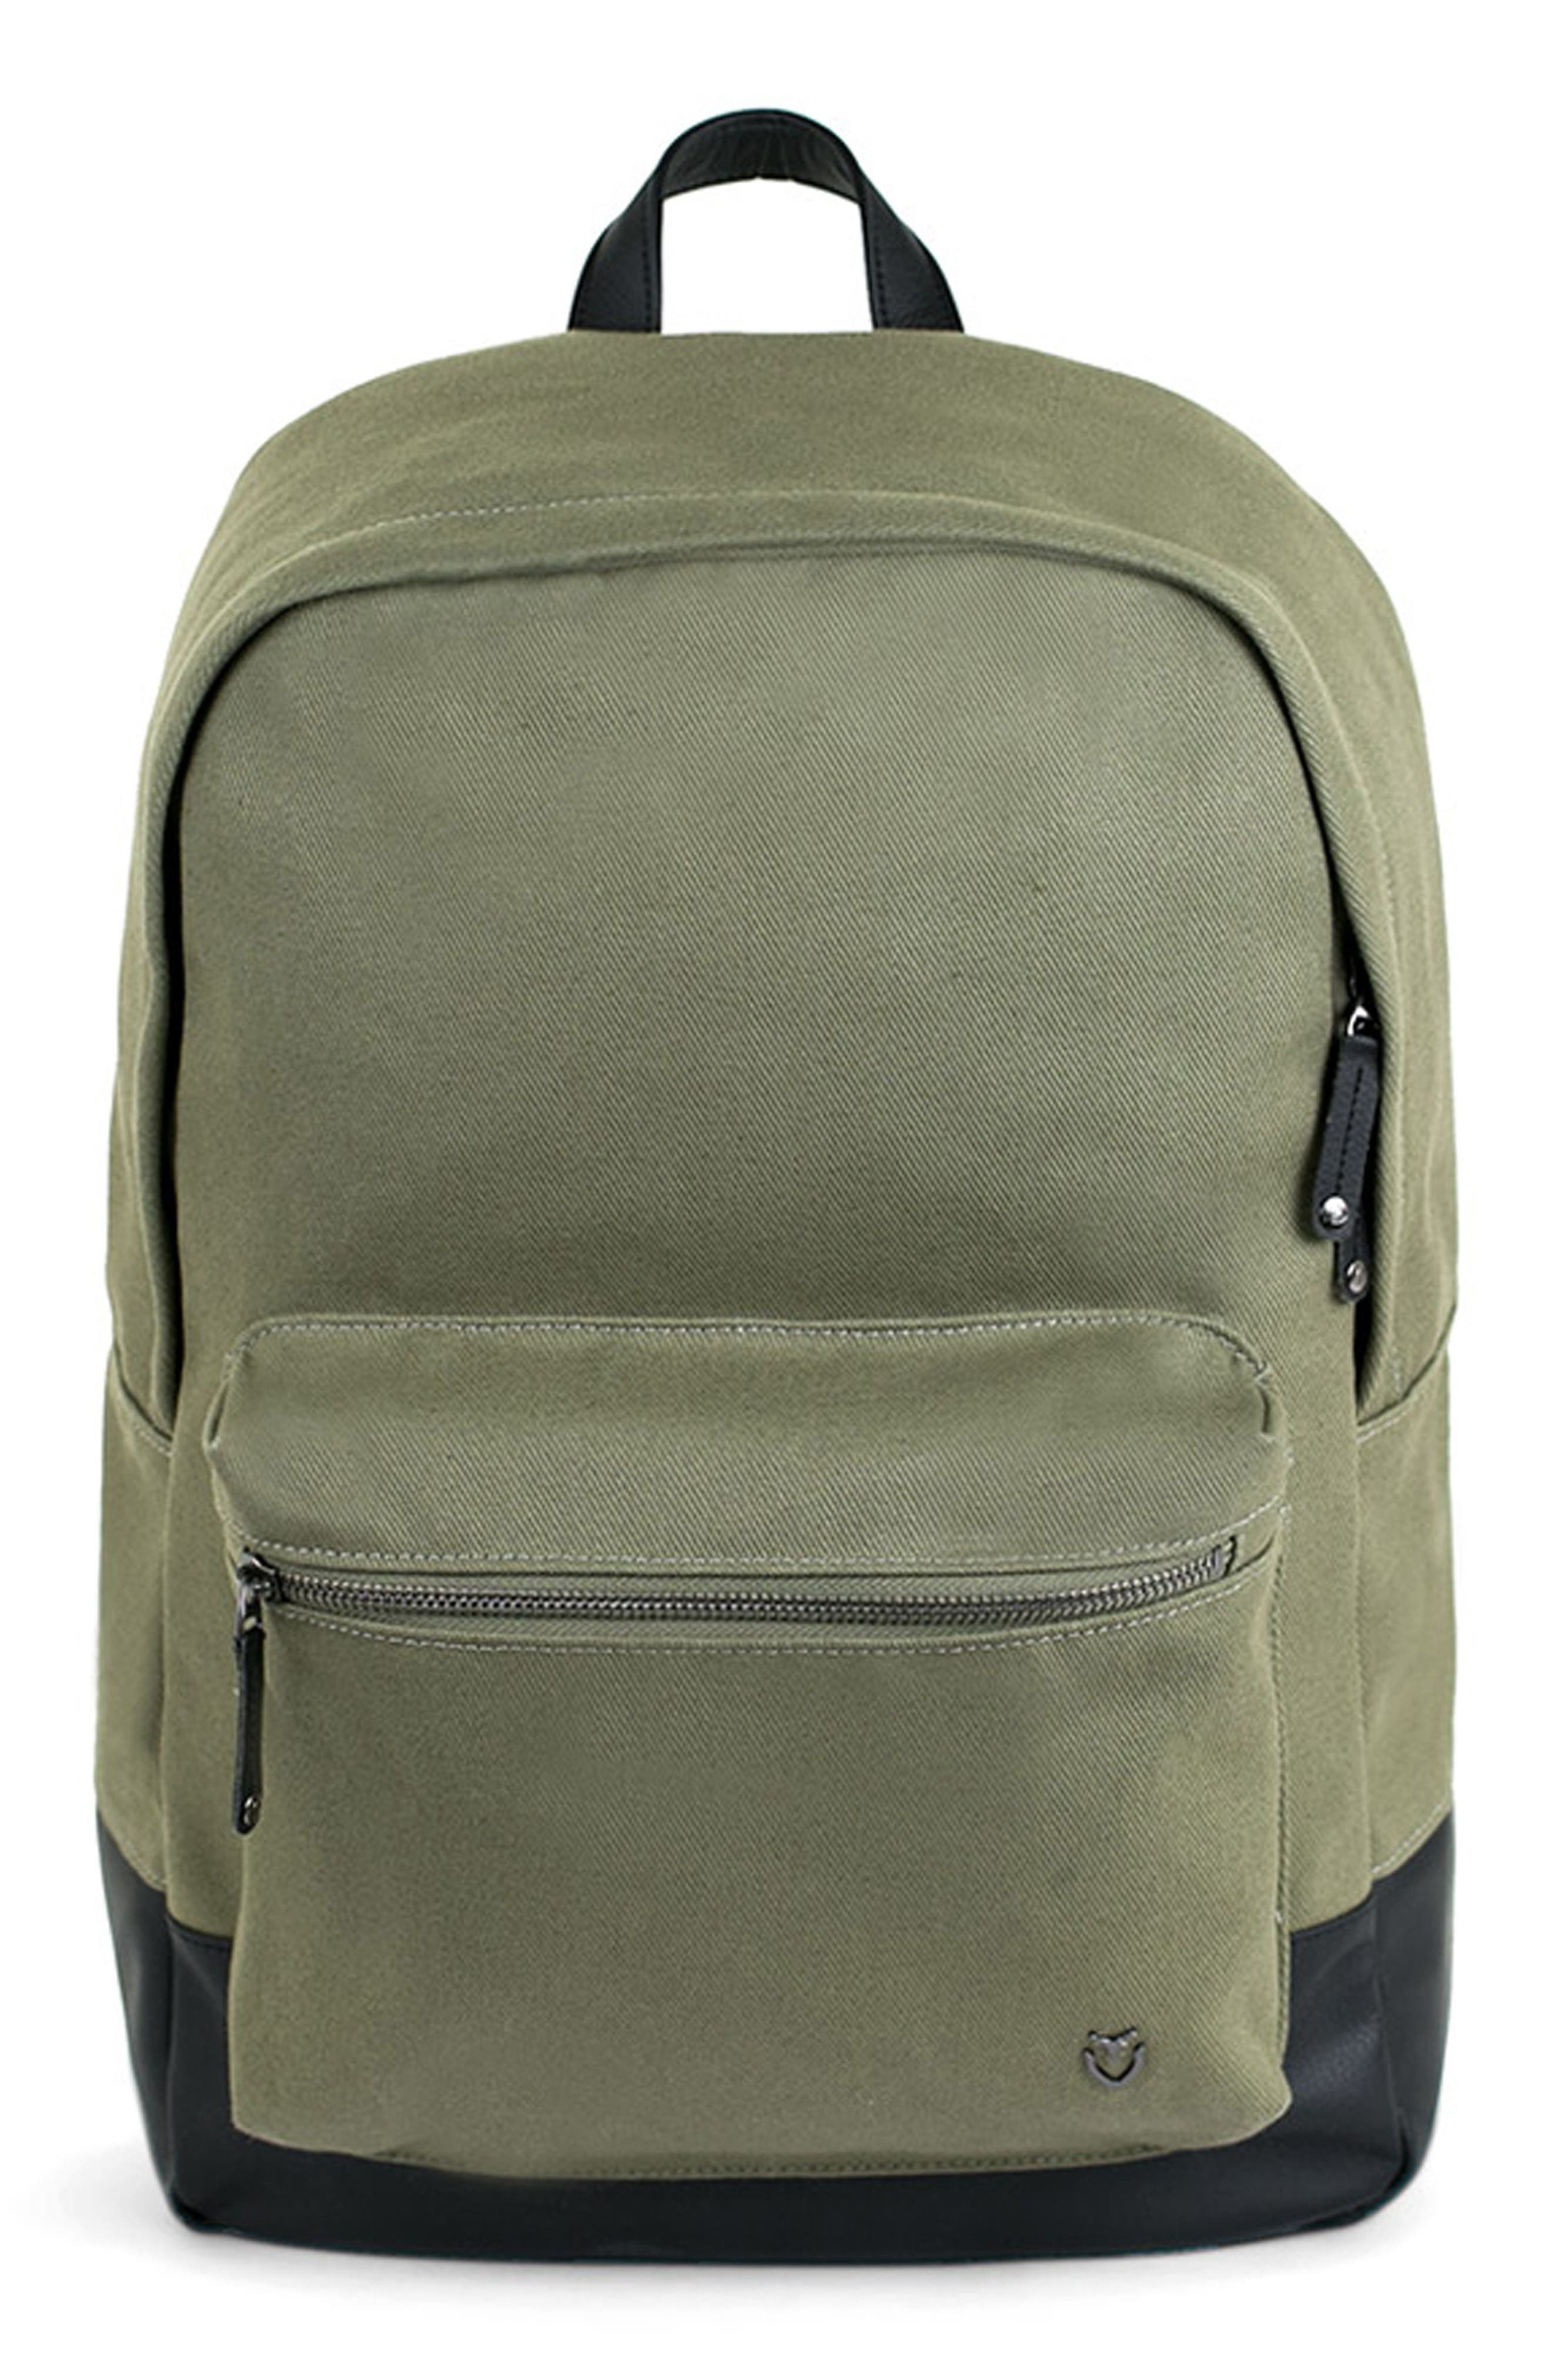 Vessel Refined Backpack